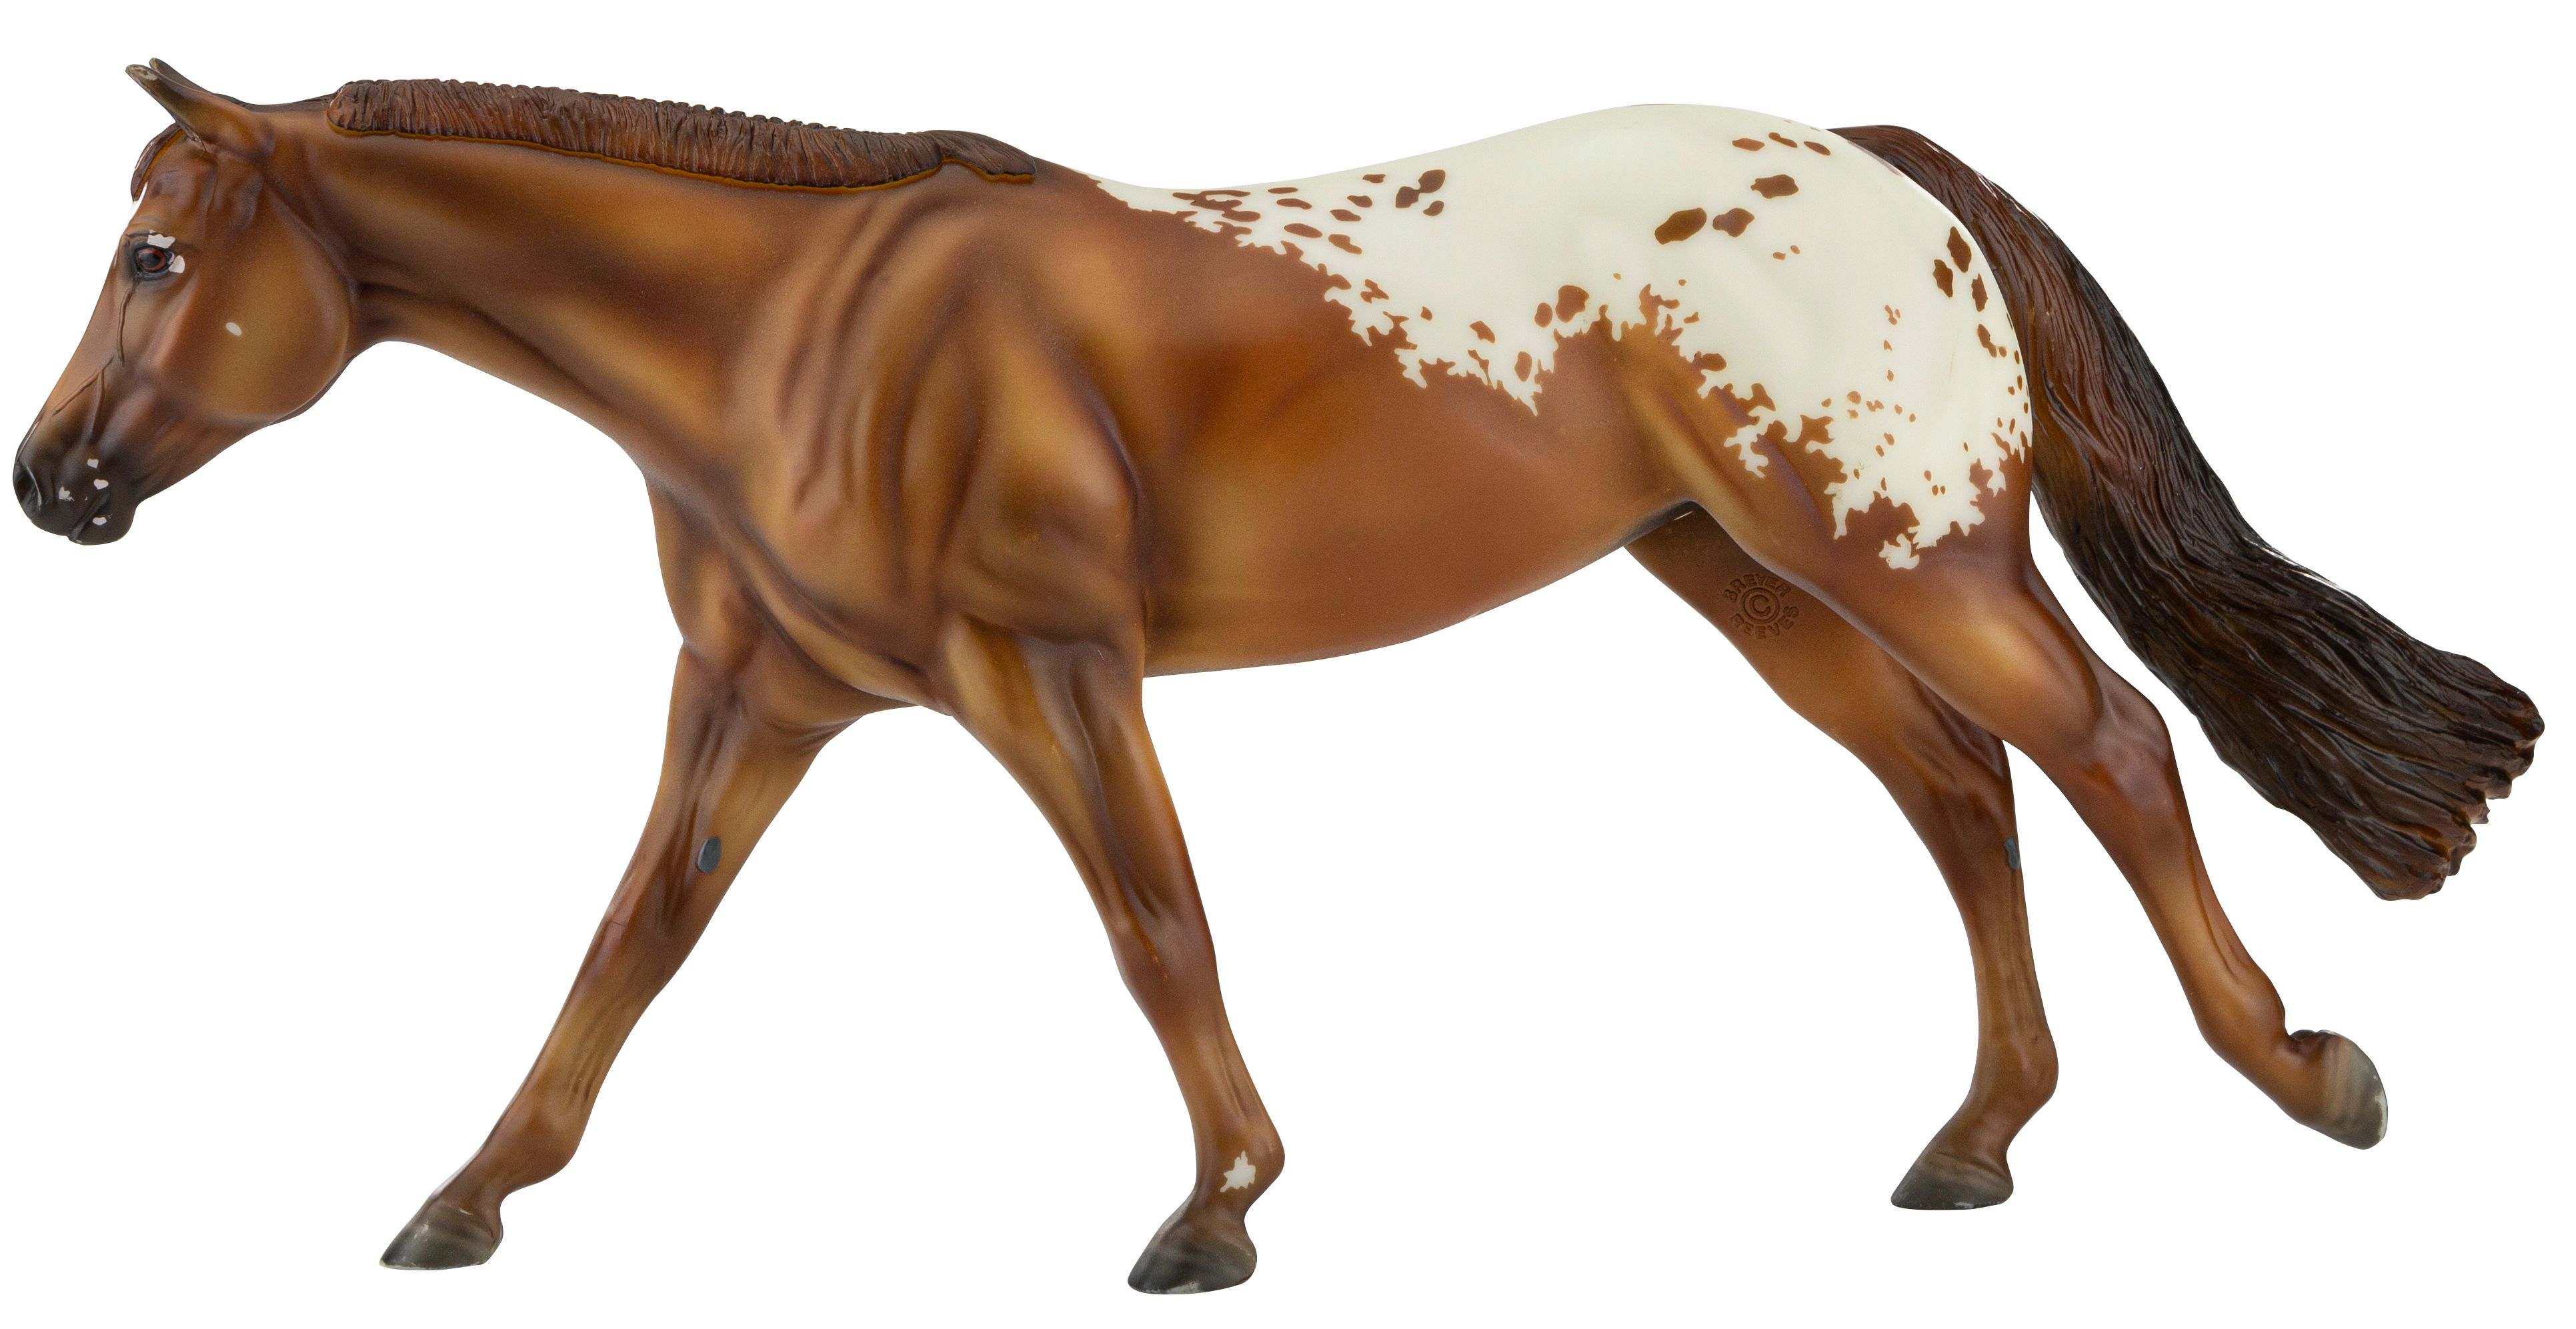 Breyer Chocolatey #1842